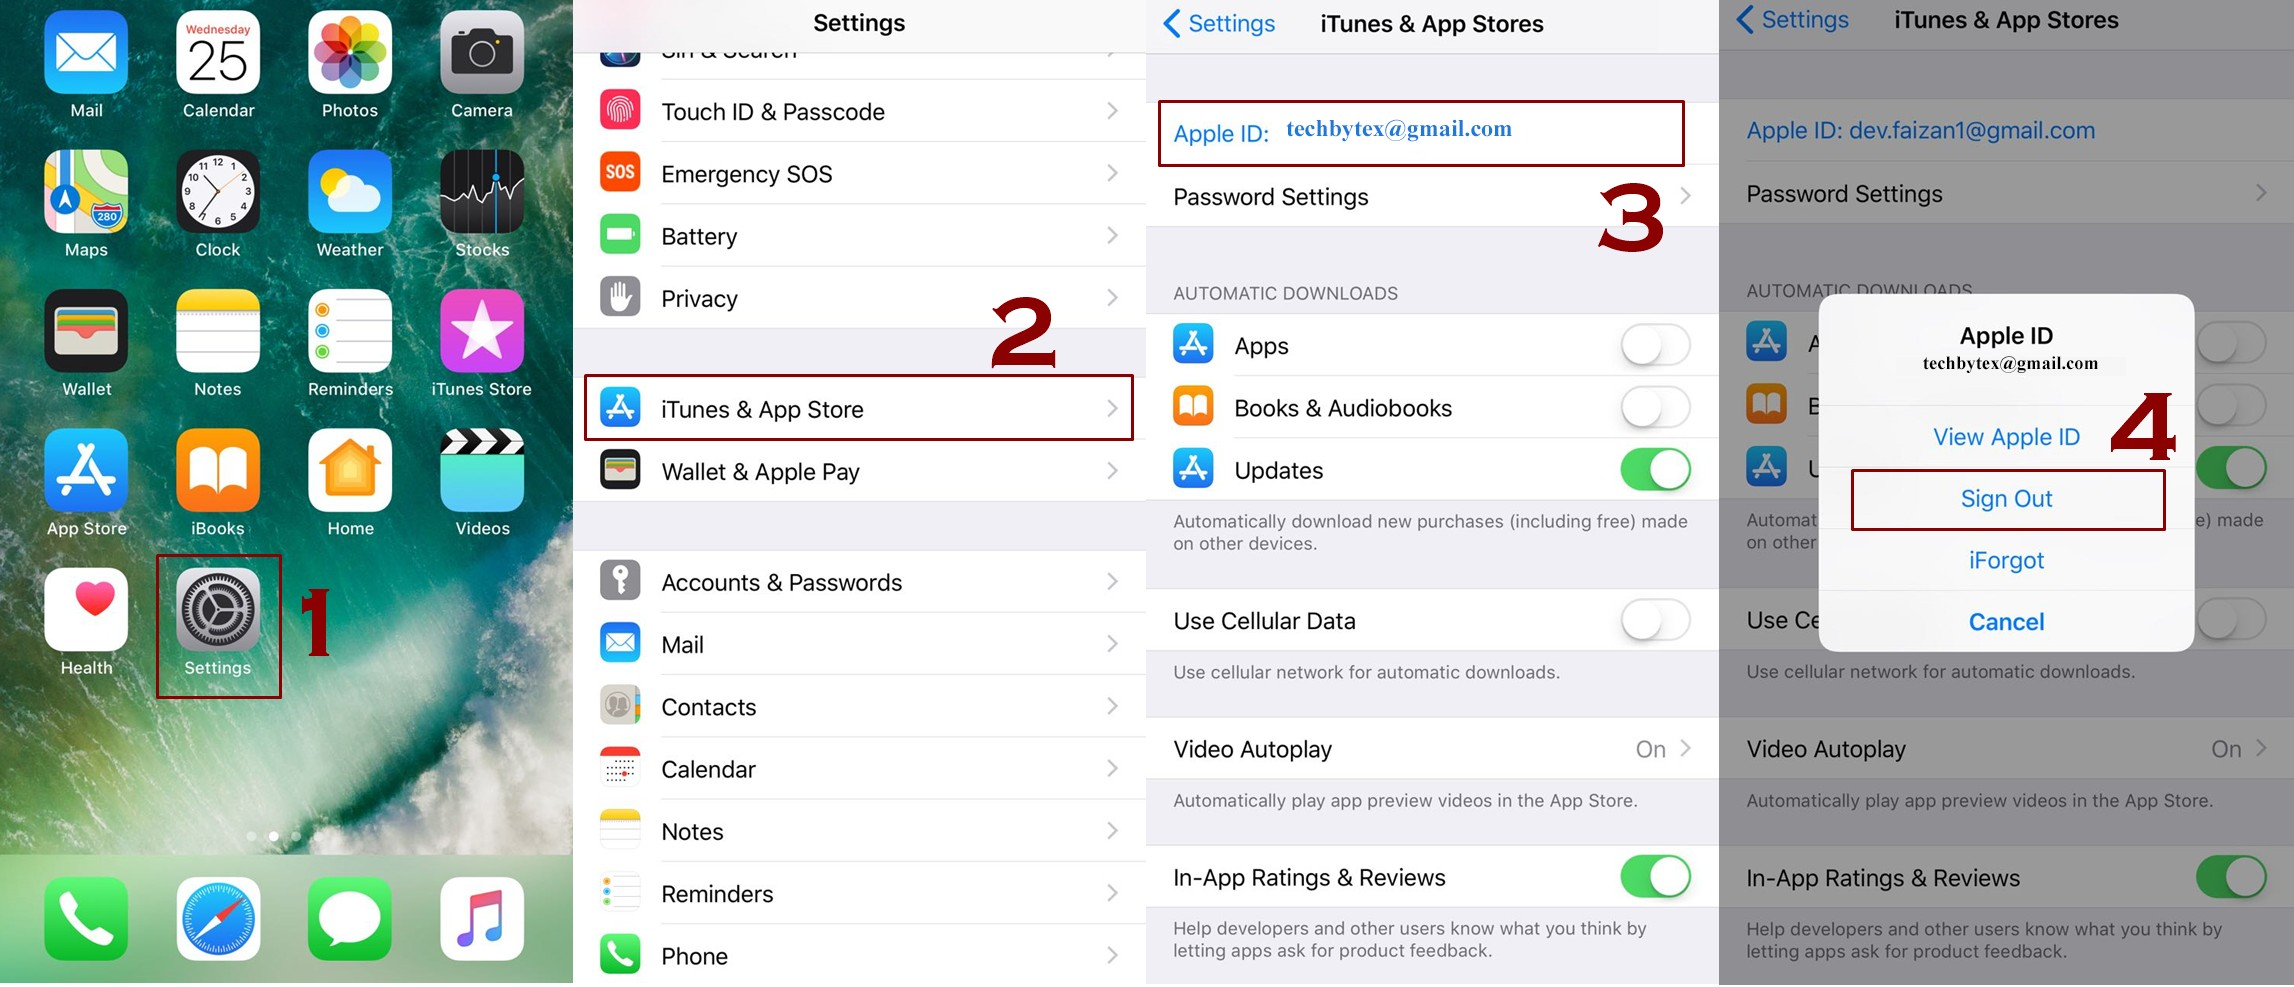 how to change apple id on iphone - How to Change Apple ID on iPhone